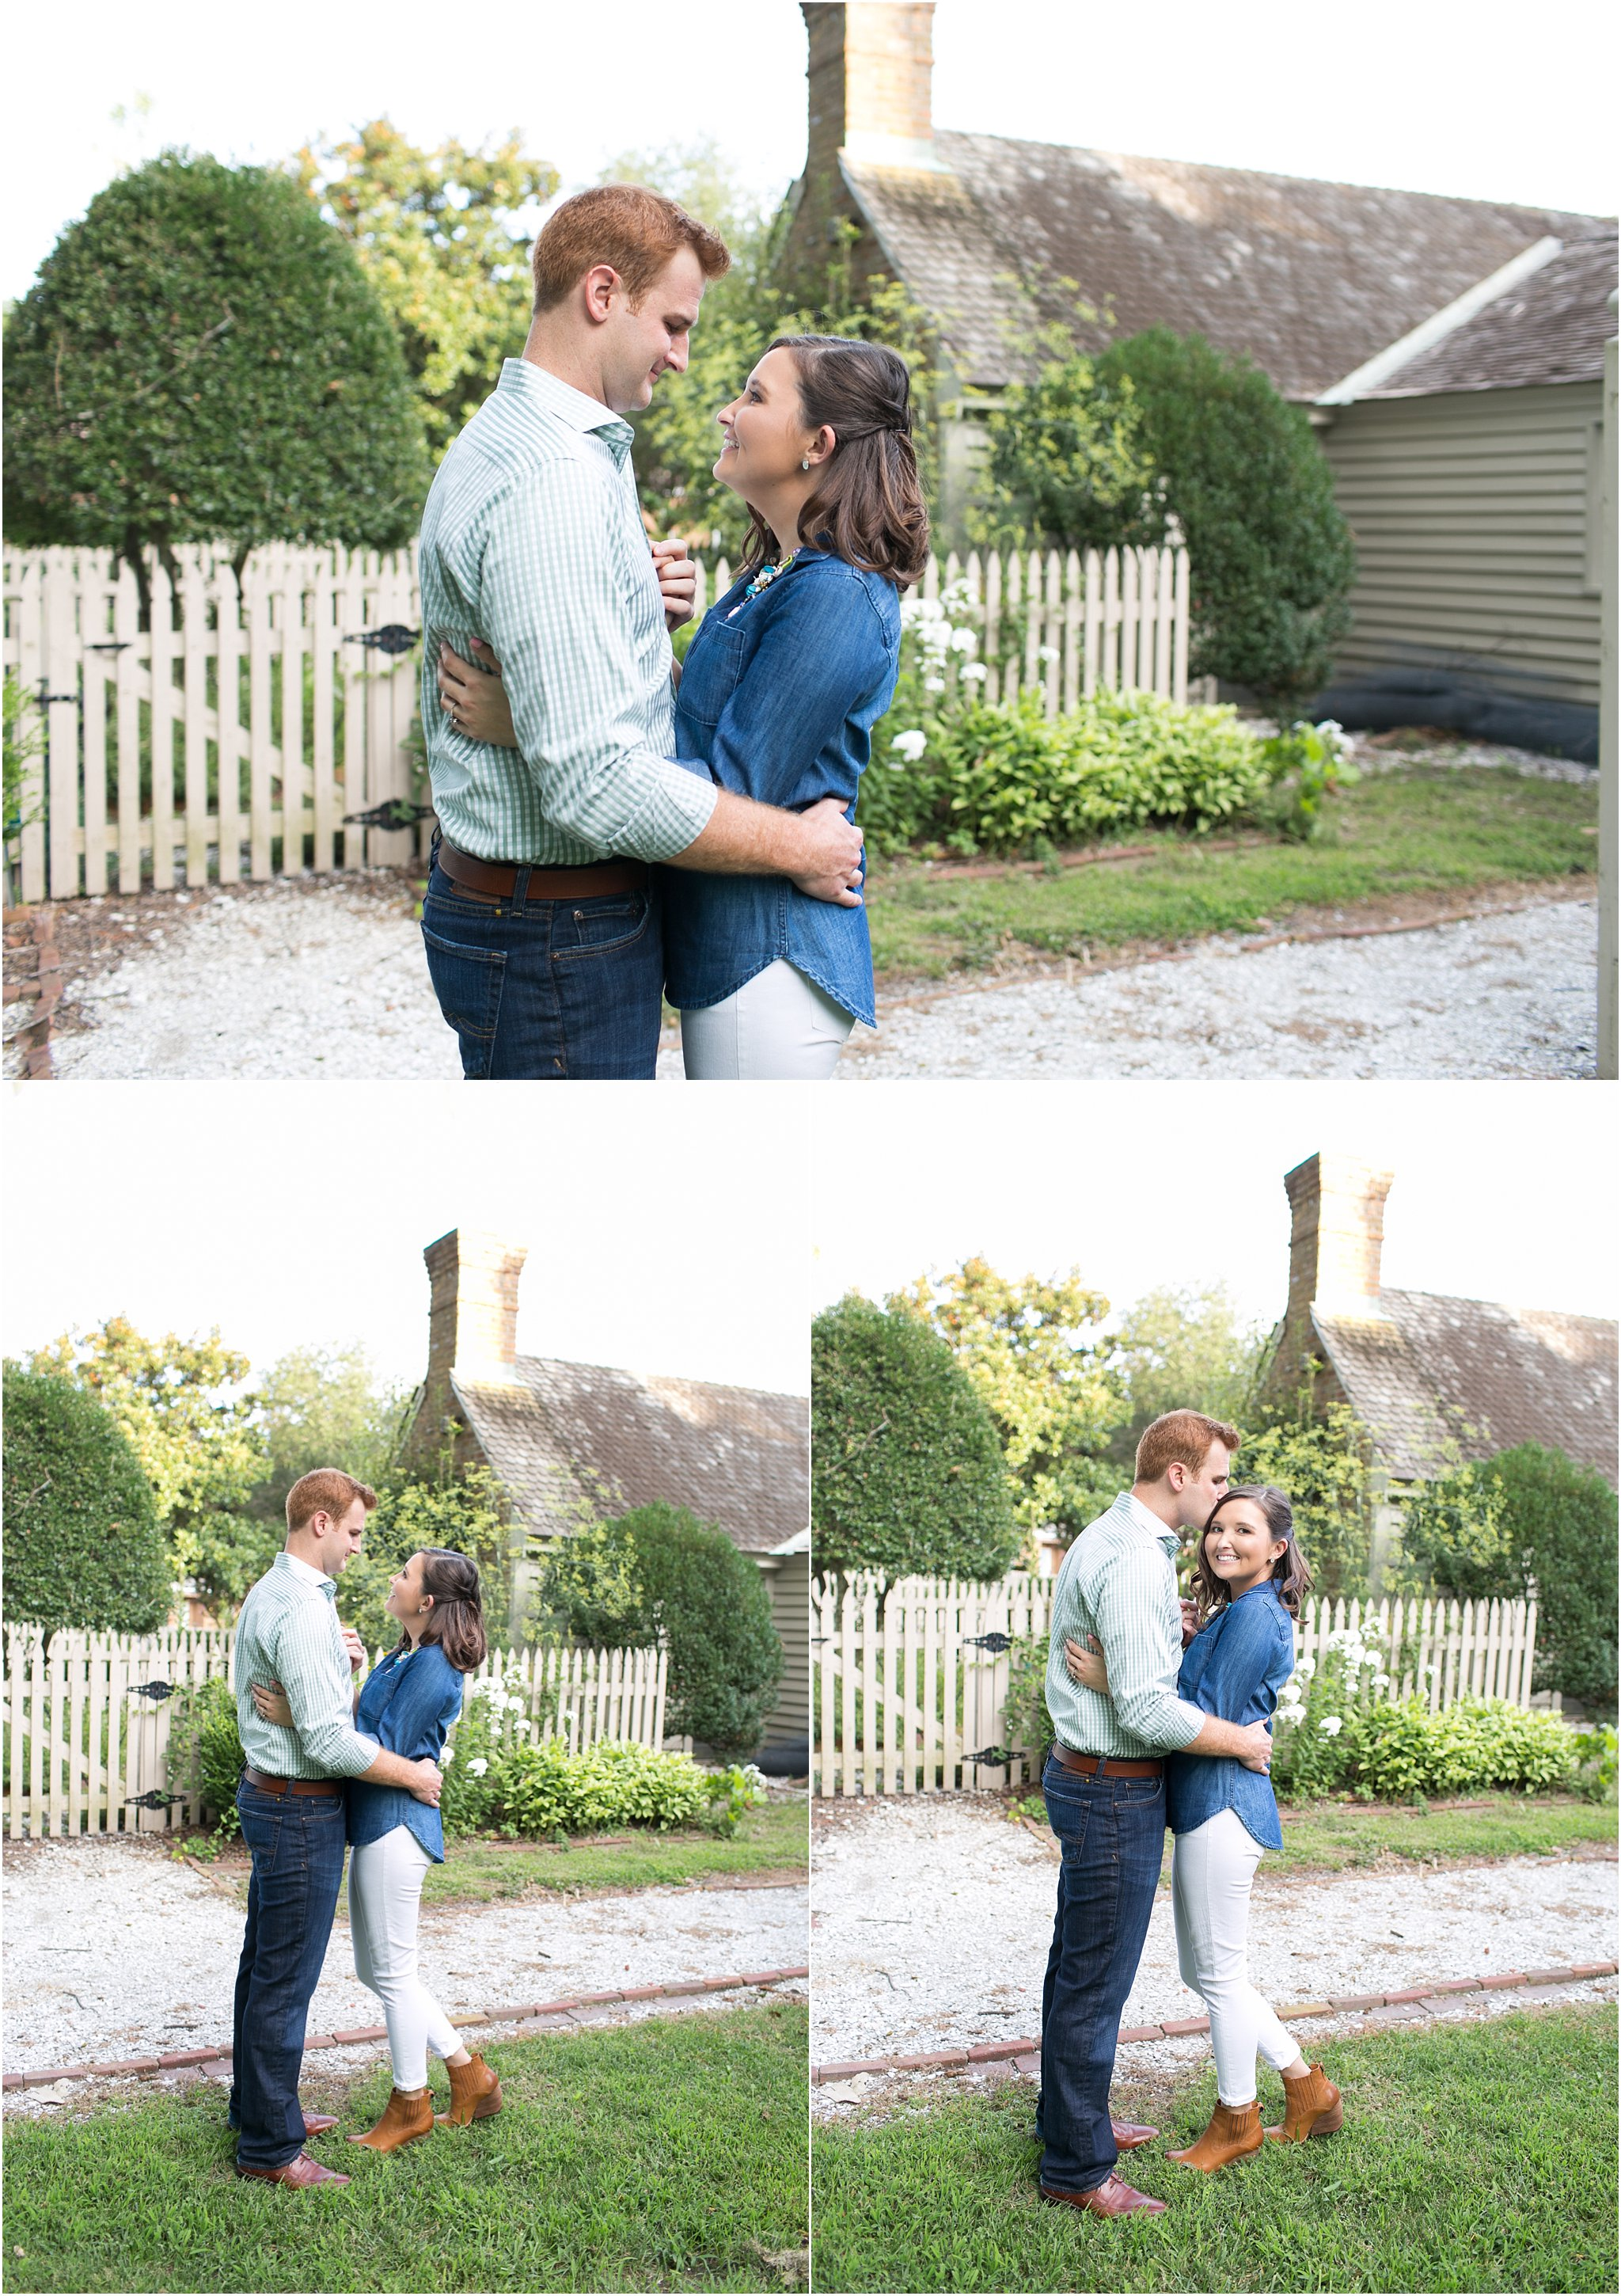 jessica_ryan_photography_virginia_virginia_beach_francis_land_house__portraits_bride_and_groom_beloved_historical_home_engagement_portraits_candid_authentic_engagements_2716